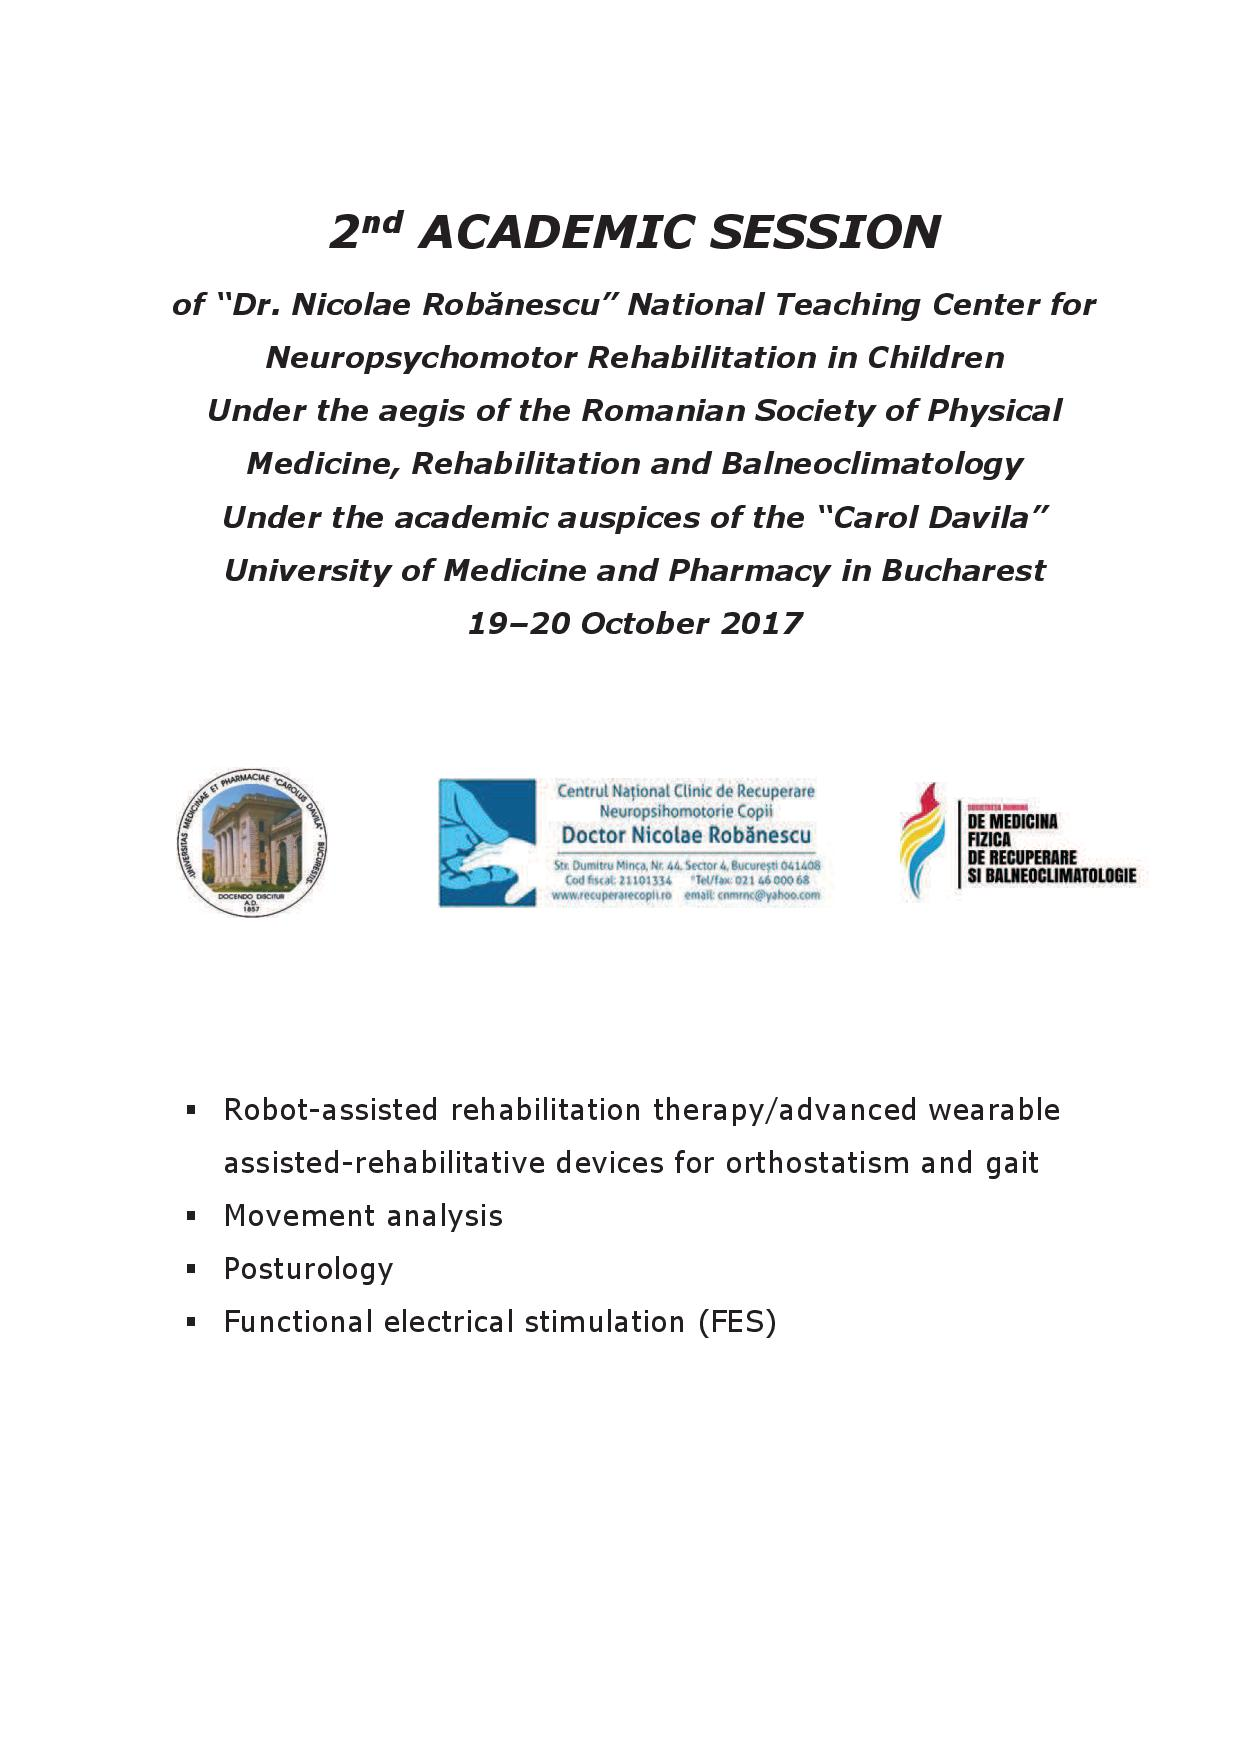 ADVANCED NEUROREHABILITATION PROCEDURES - 2nd ACADEMIC SESSION 19-20 October 2017, Bucharest pg1/5